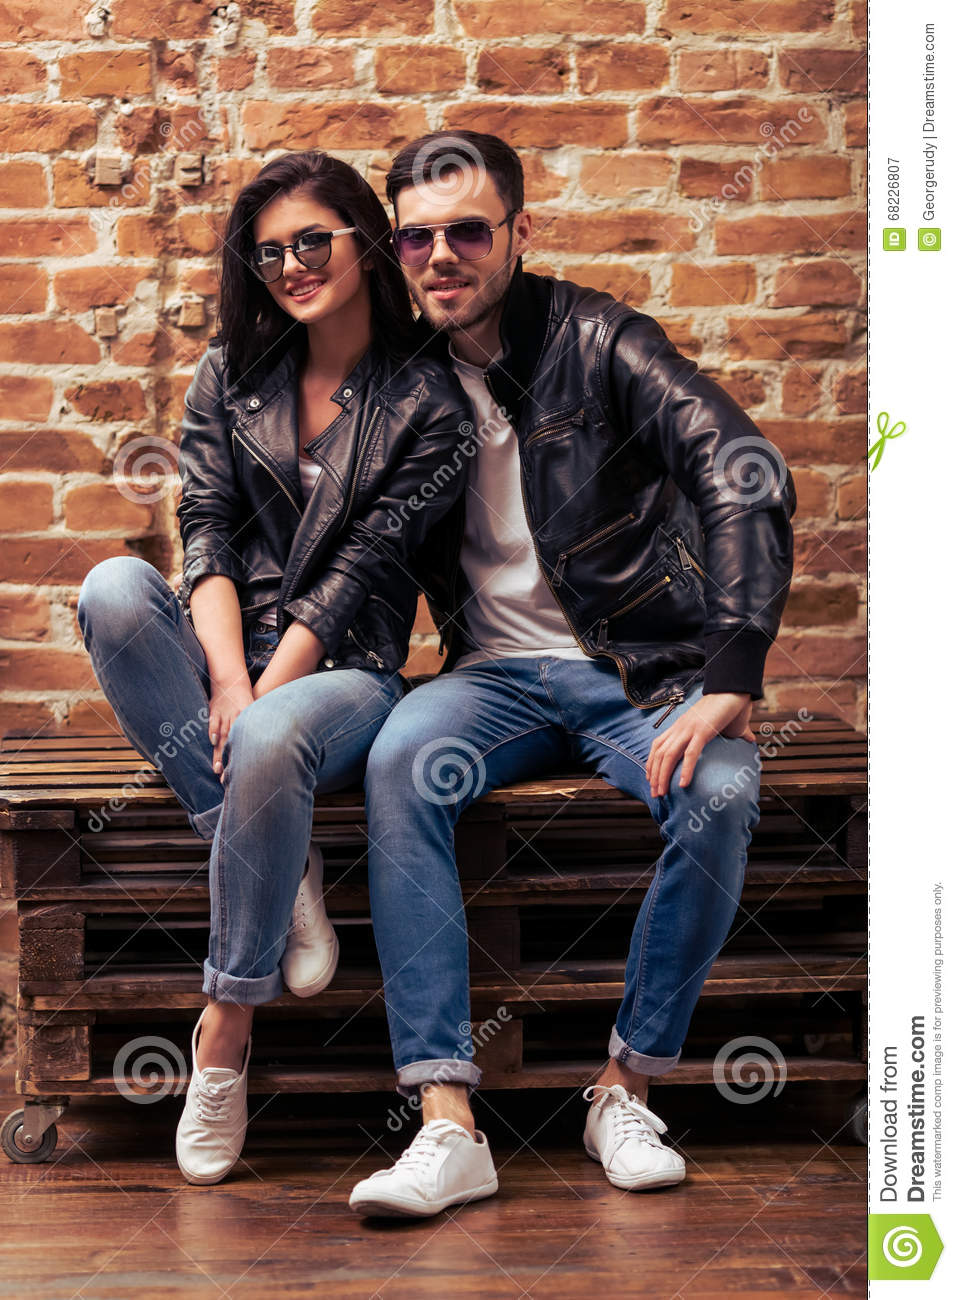 Cool Beautiful Young Couple In Leather Jackets And Sunglasses Is Looking At Camera And Smiling Sitting Against Brick Wall